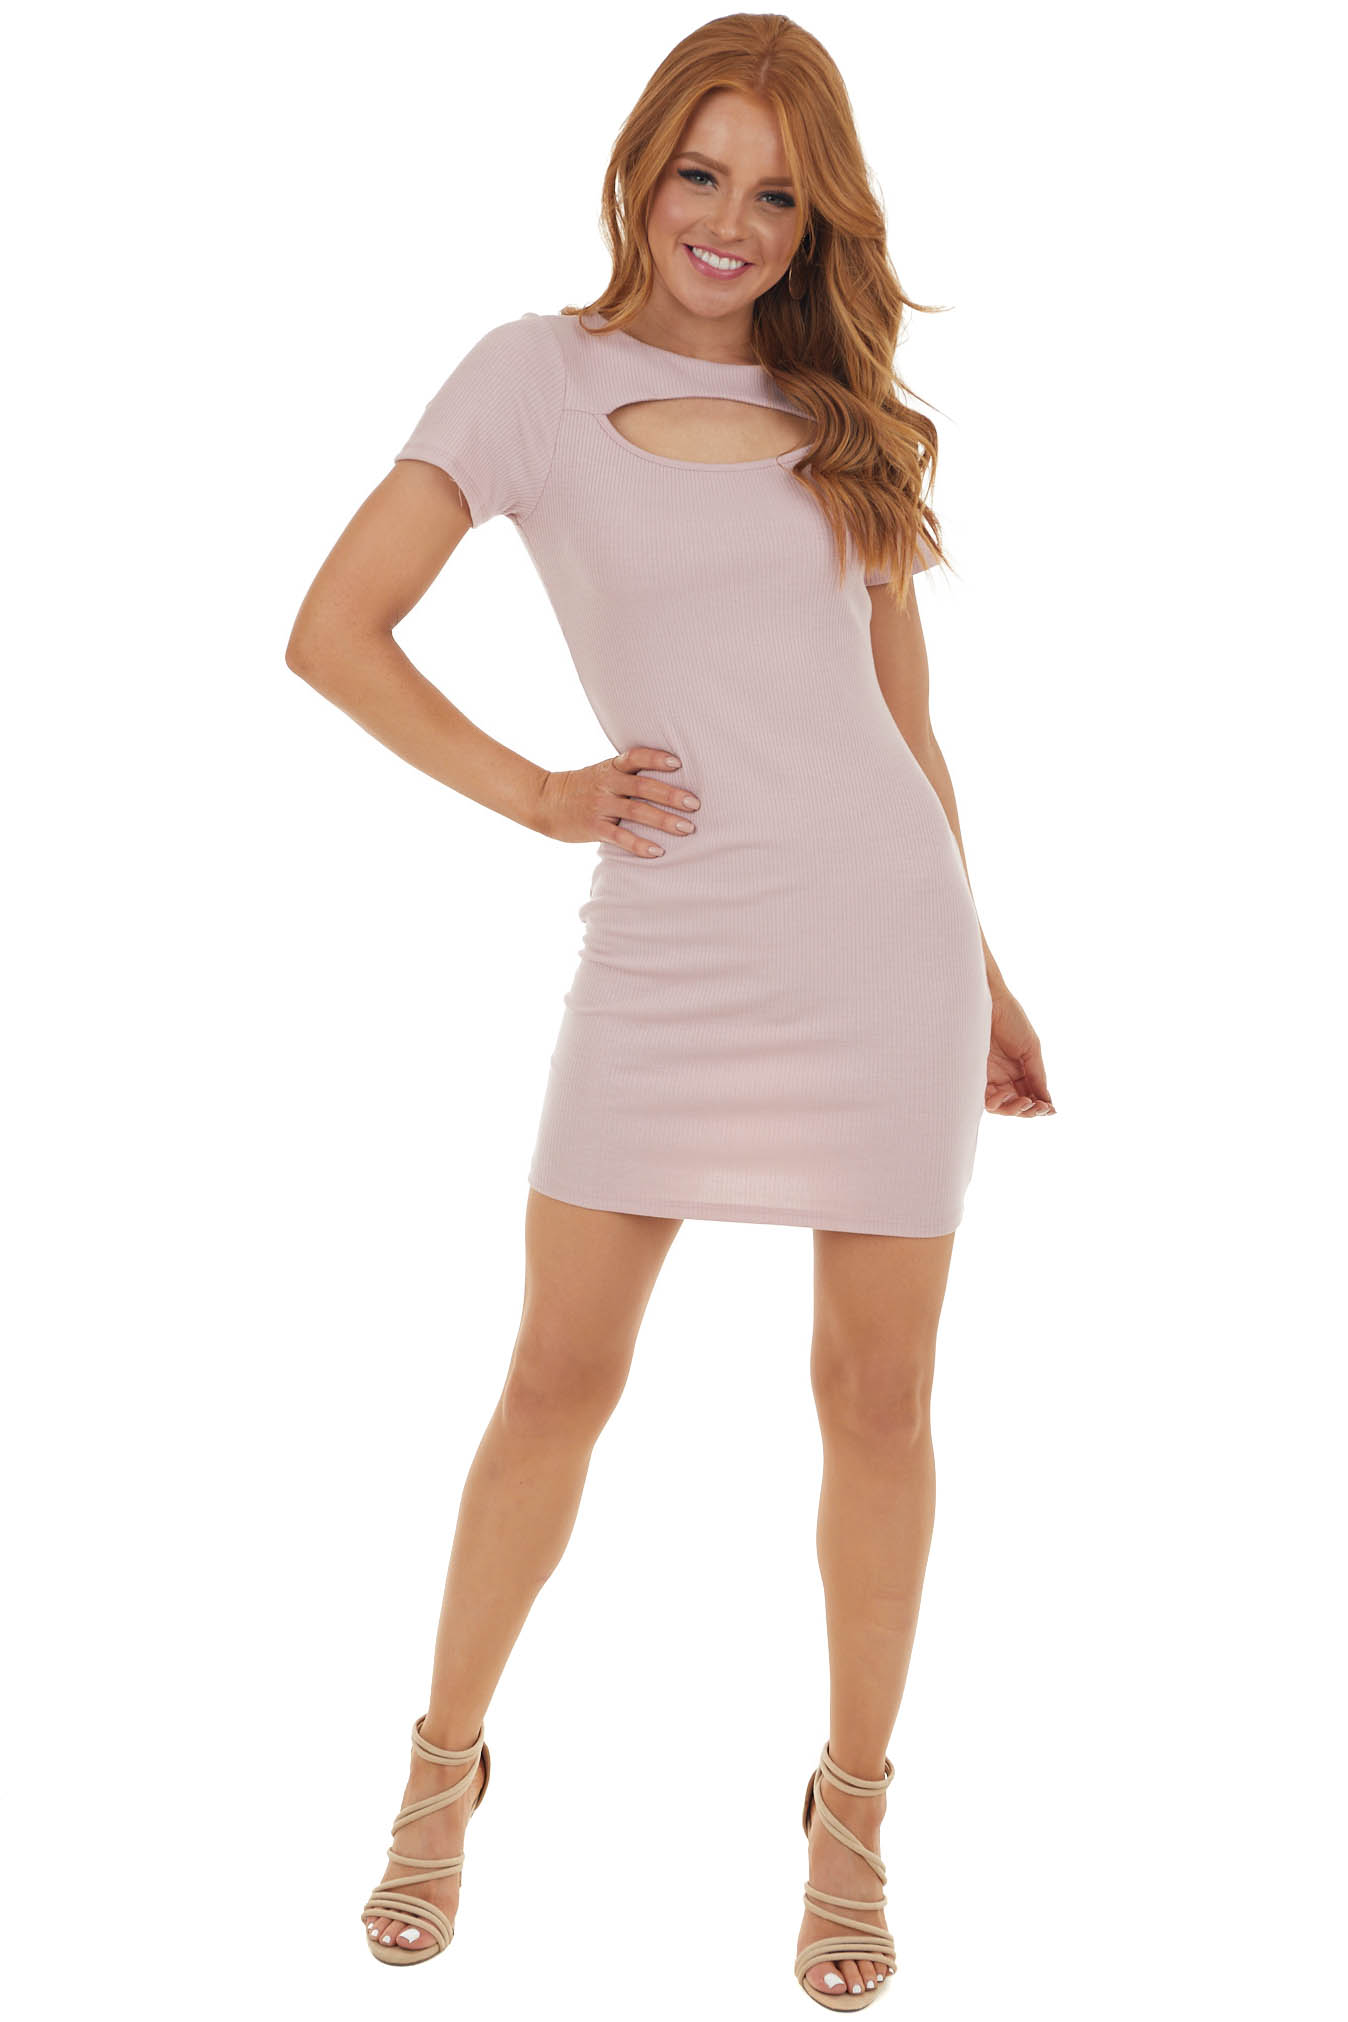 Dusty Blush Bodycon Ribbed Knit Dress with Cutout Detail